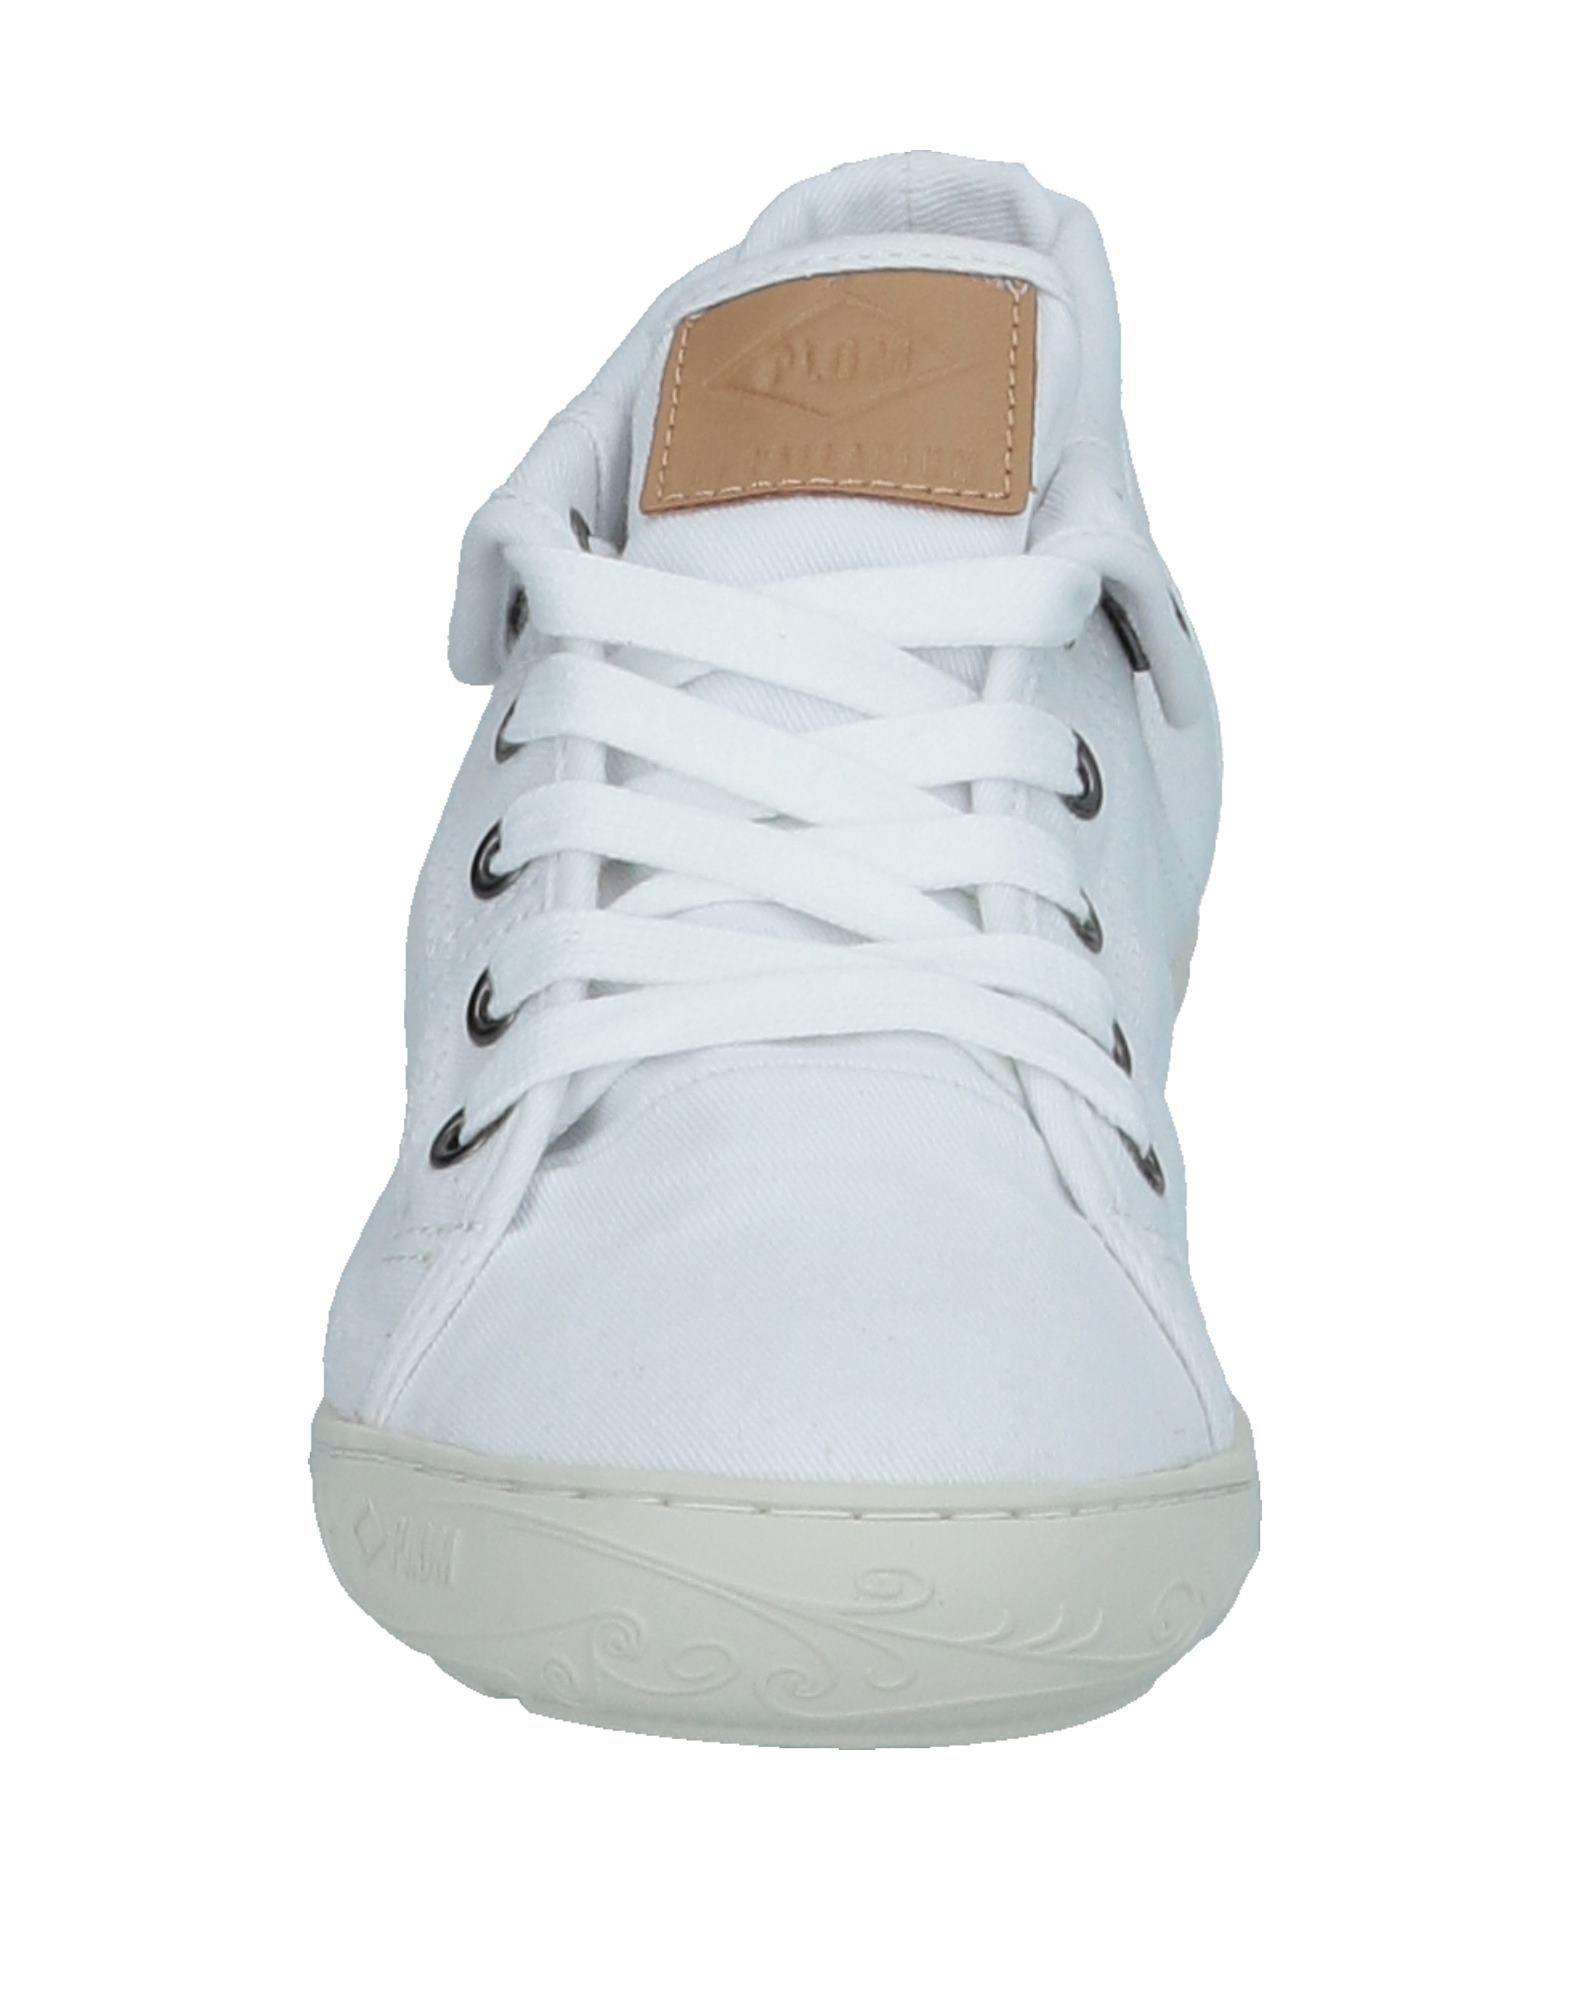 Palladium High-tops & Sneakers in White